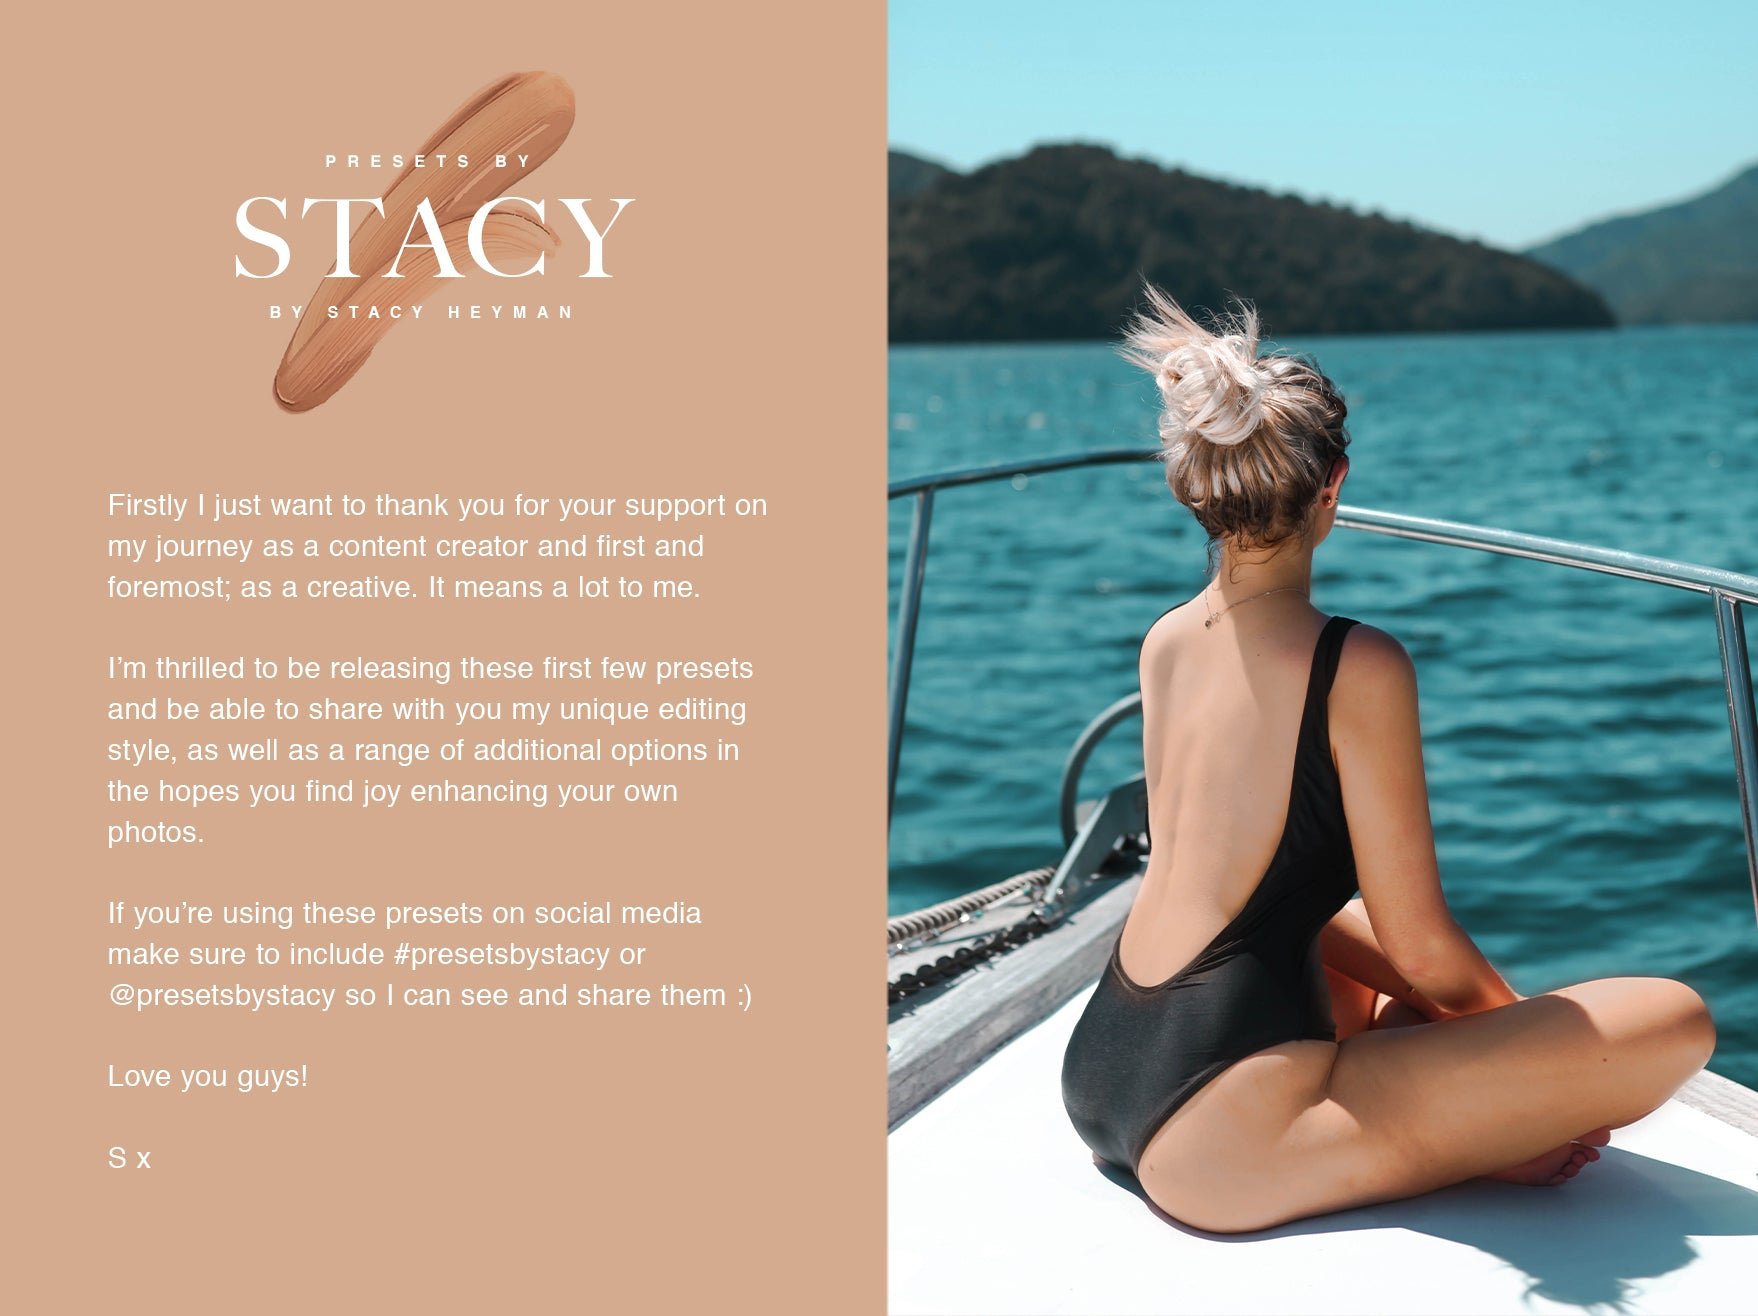 Thank you for choosing presets by stacy